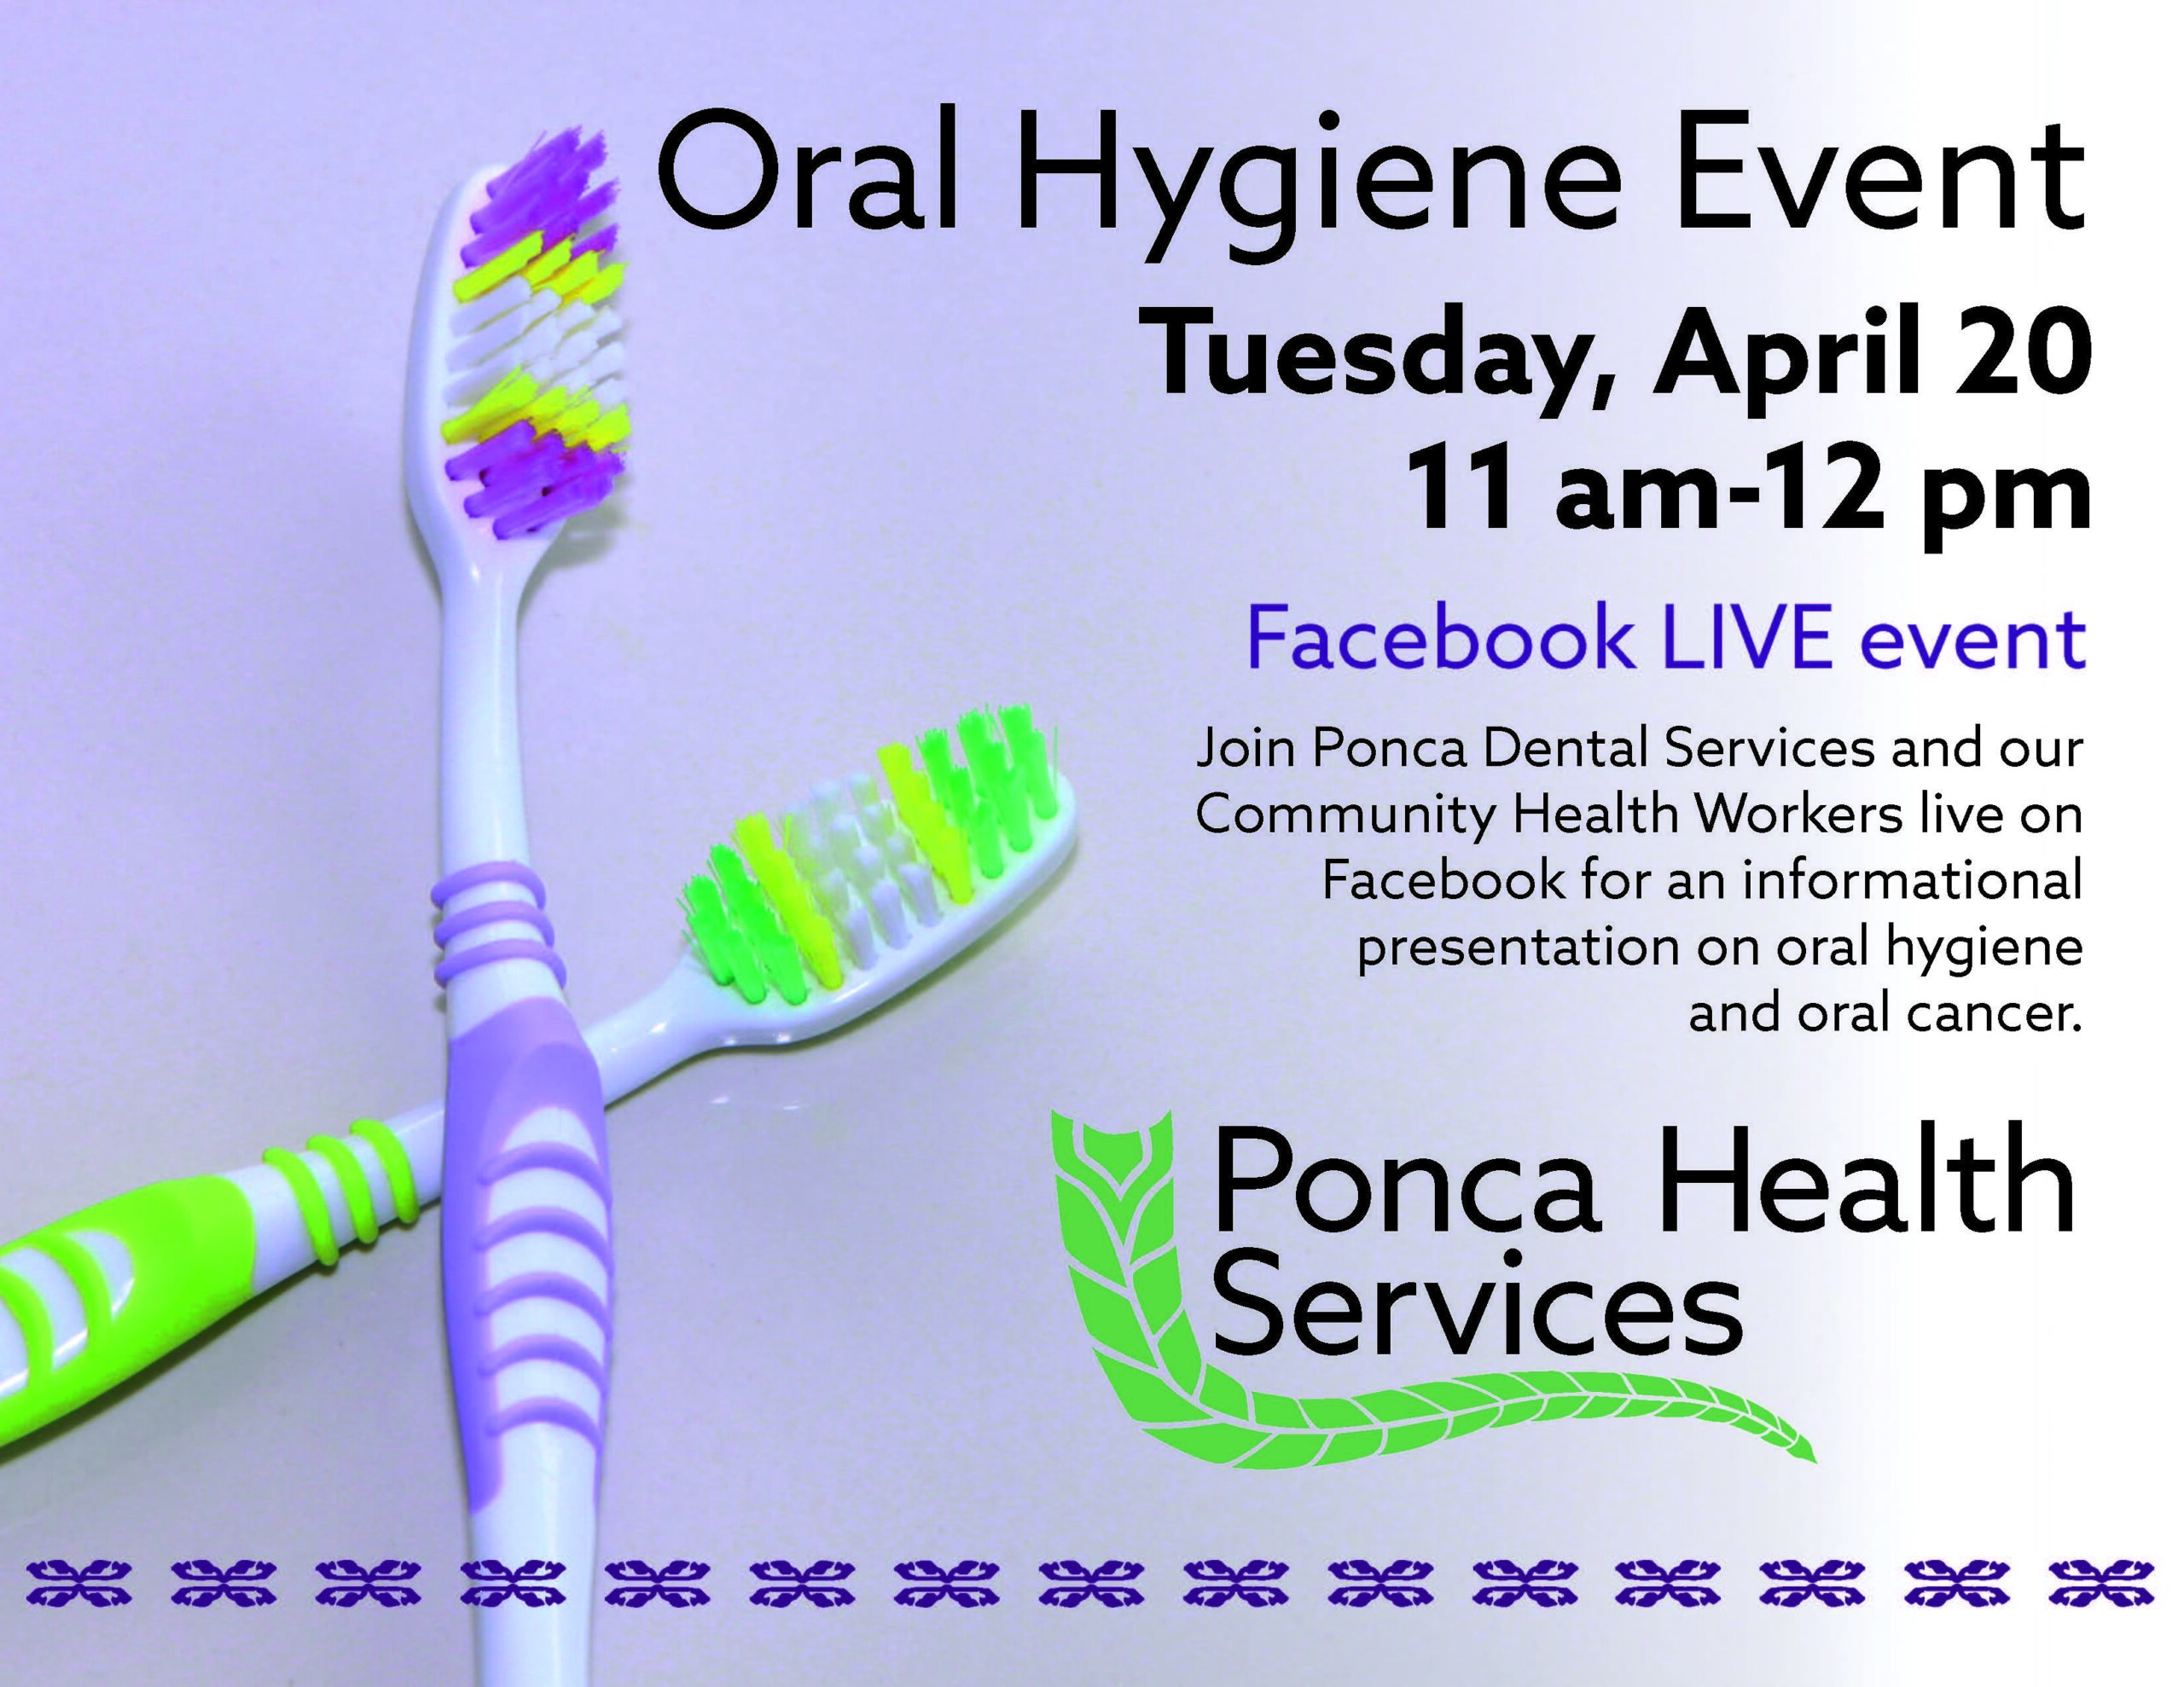 Oral Hygiene Event Live on Facebook